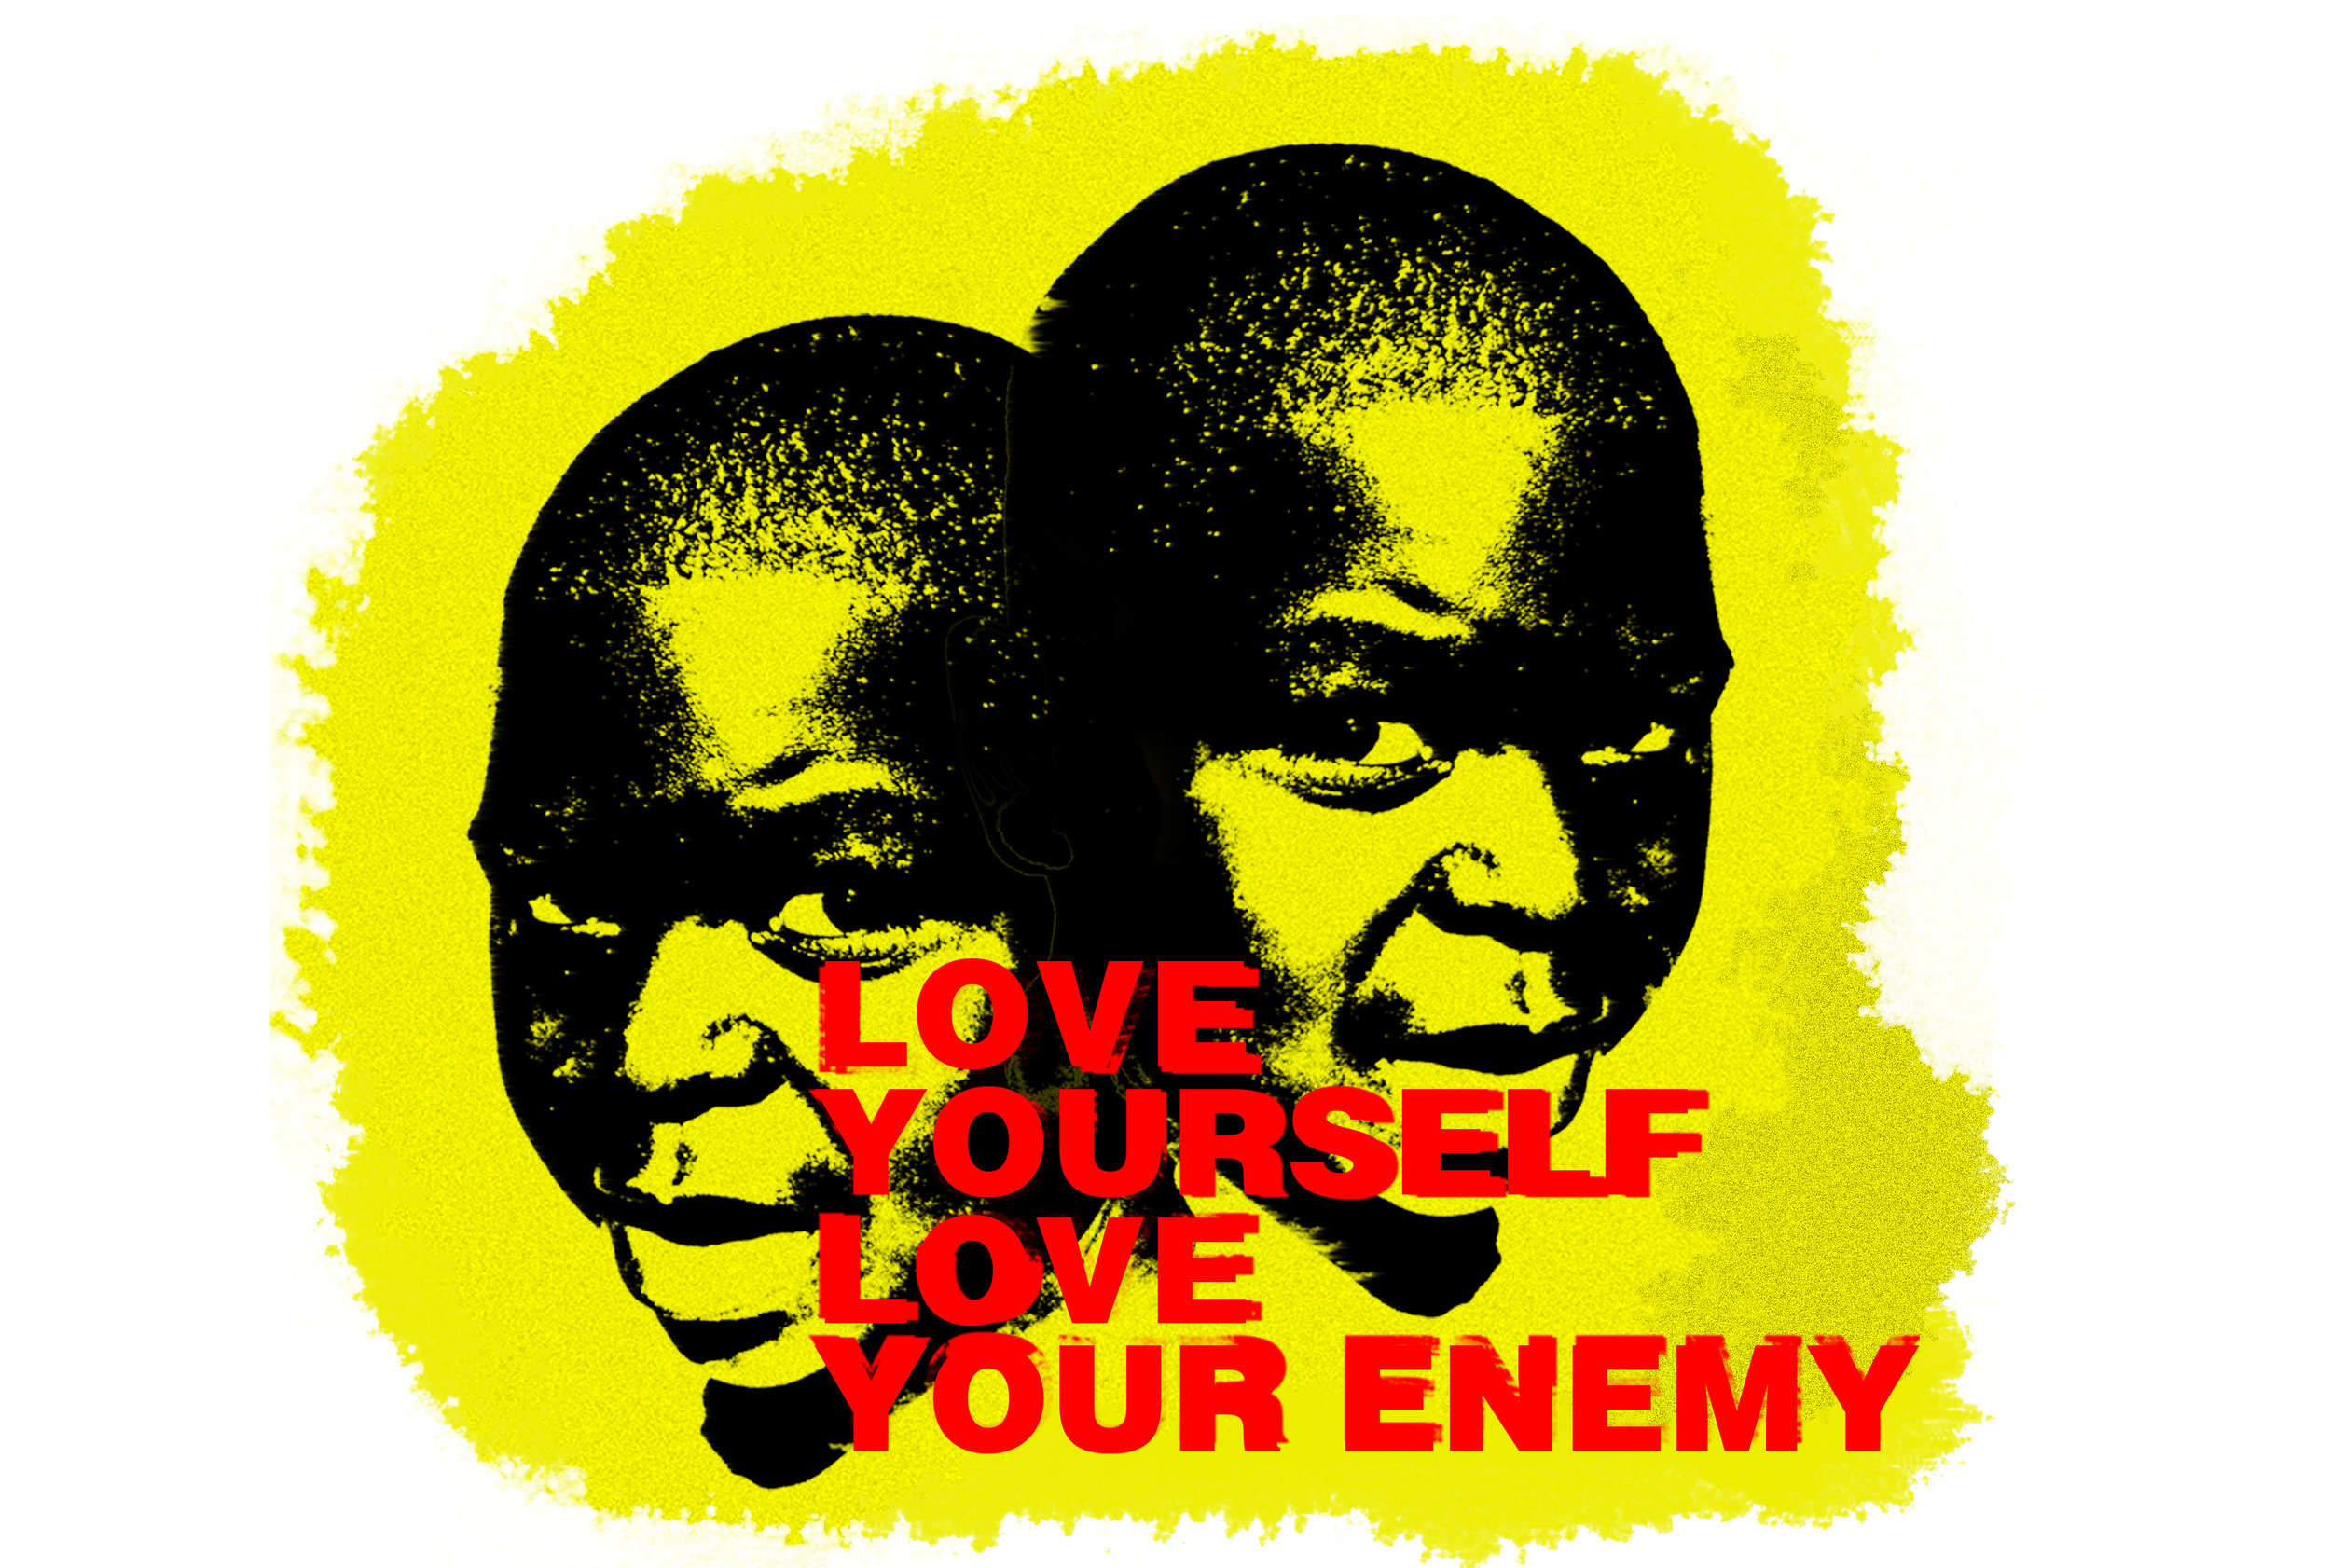 love yourself love your enemy.jpg